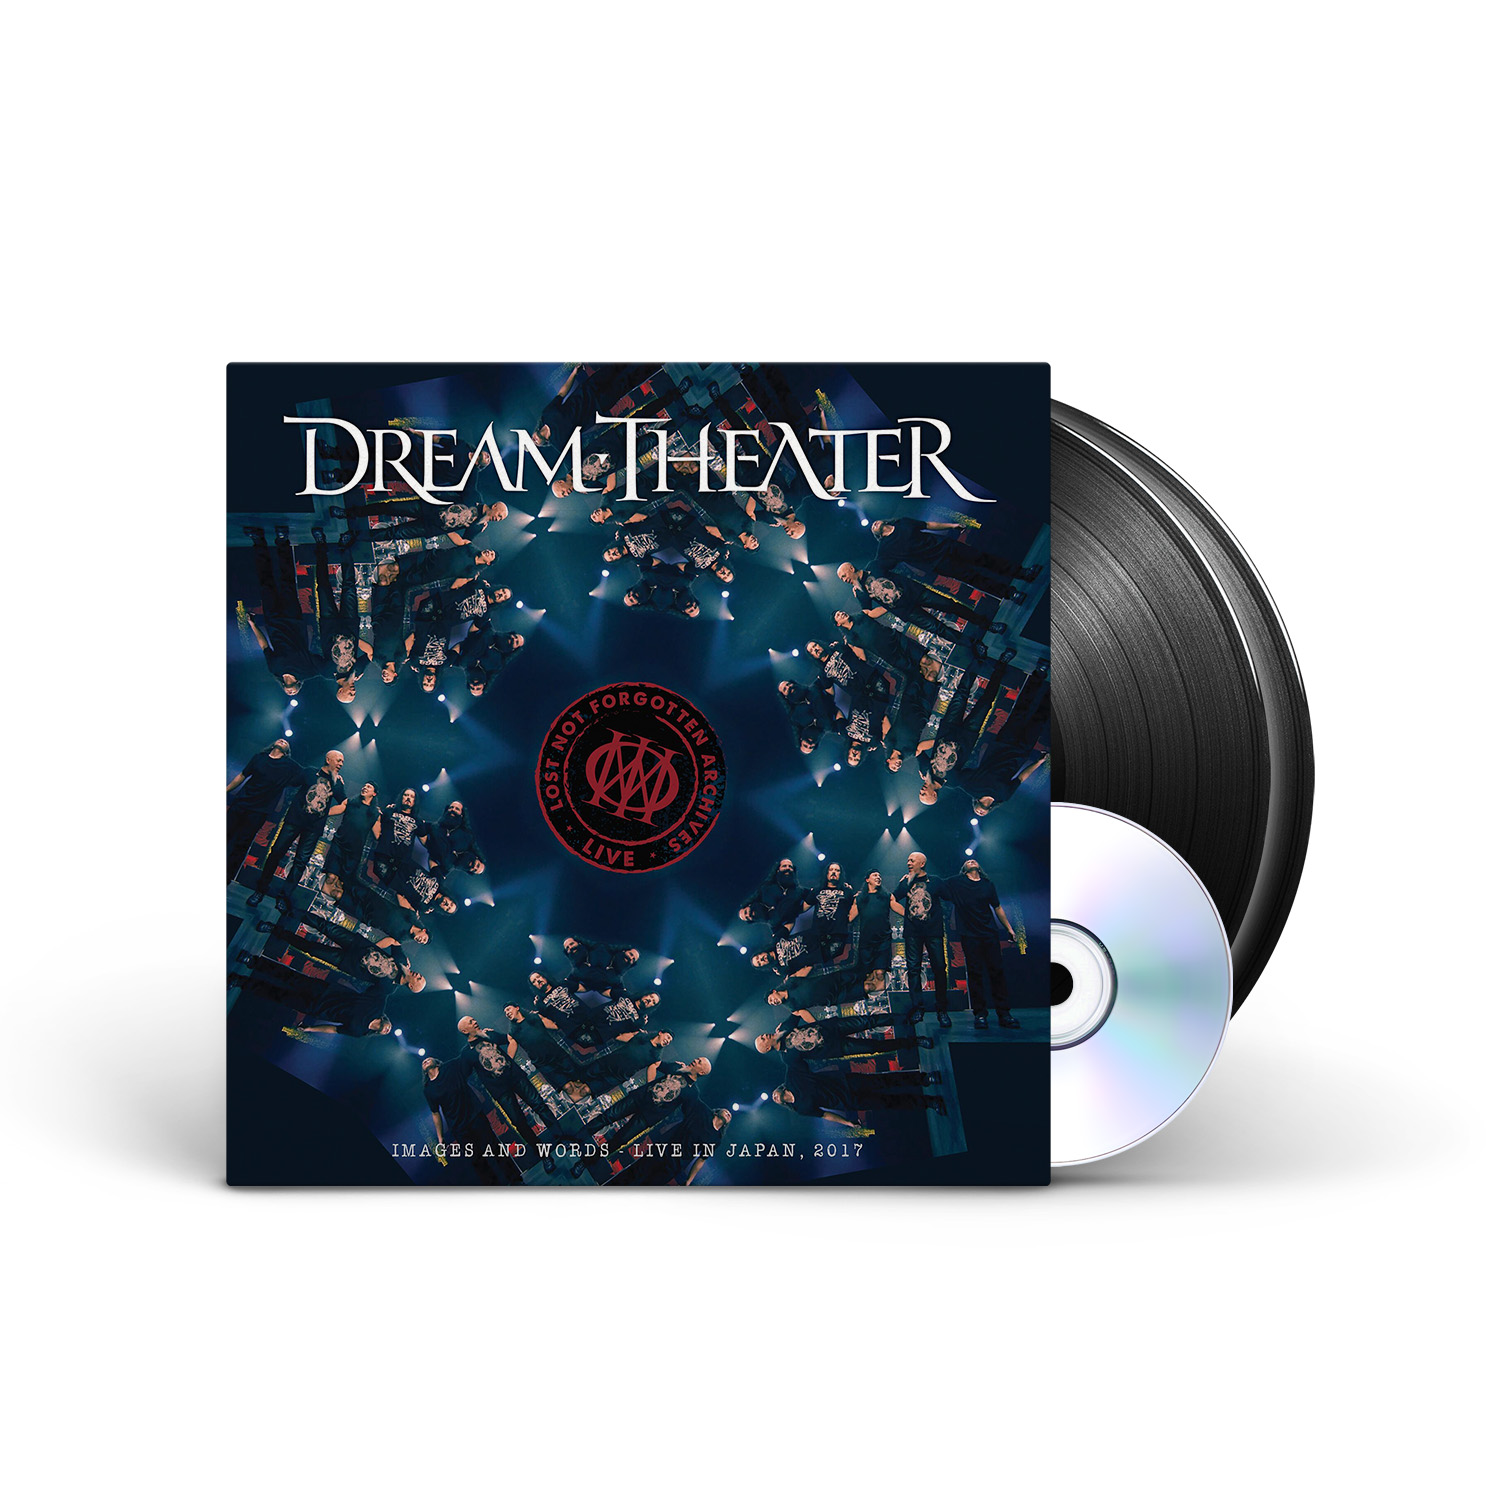 Dream Theater - Lost Not Forgotten Archives: Images and Words - Live in Japan, 2017 Black 2LP + CD + Digital Download